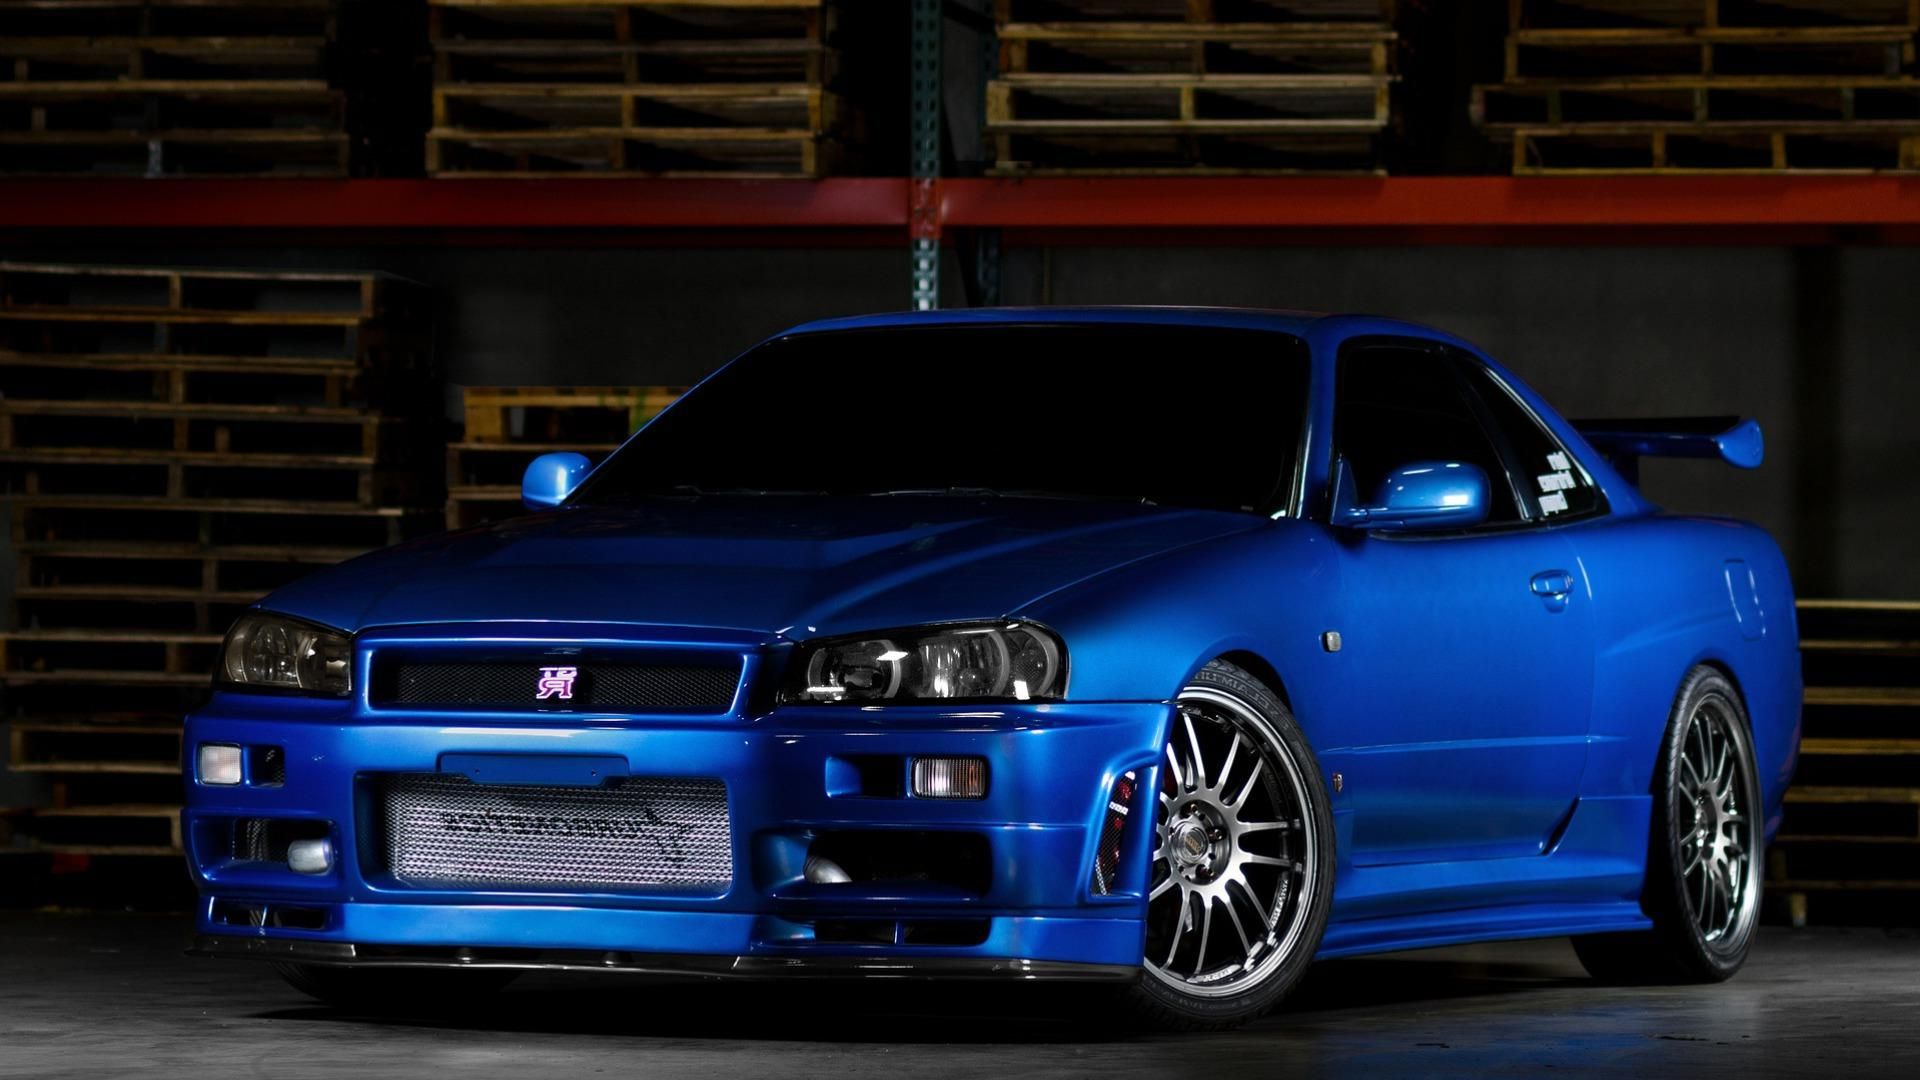 nissan skyline gtr r34 desktop hd wallpapers jdm pinterest gtr r34 skyline gtr r34 and. Black Bedroom Furniture Sets. Home Design Ideas